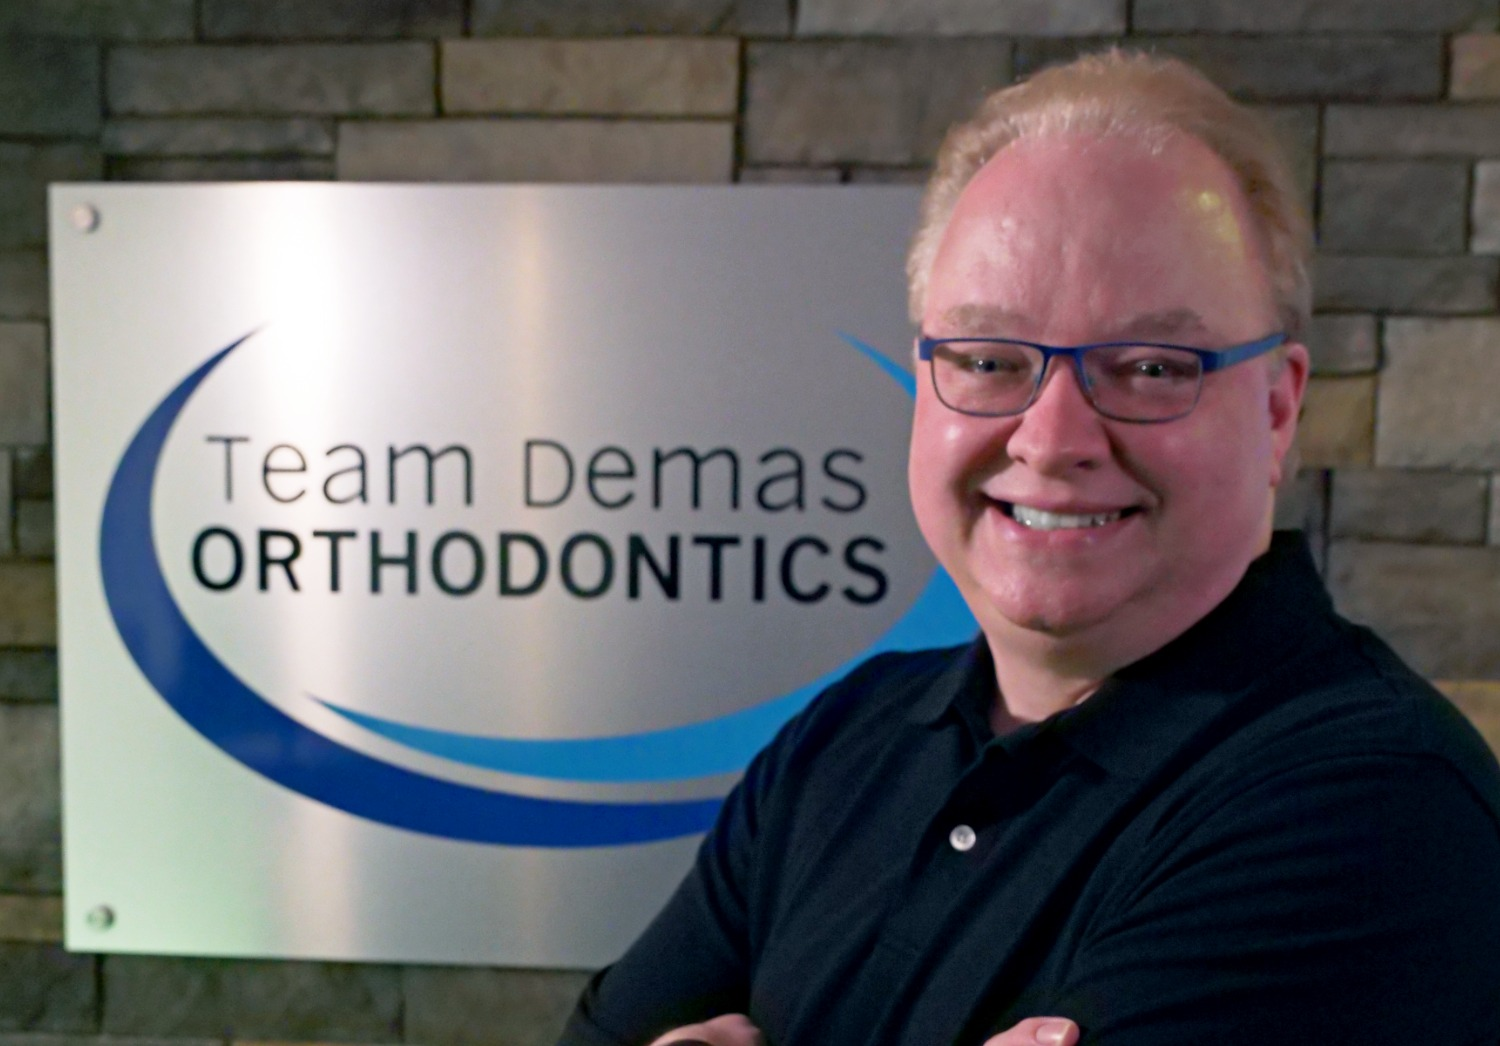 dr. demas headshot southington orthodontist